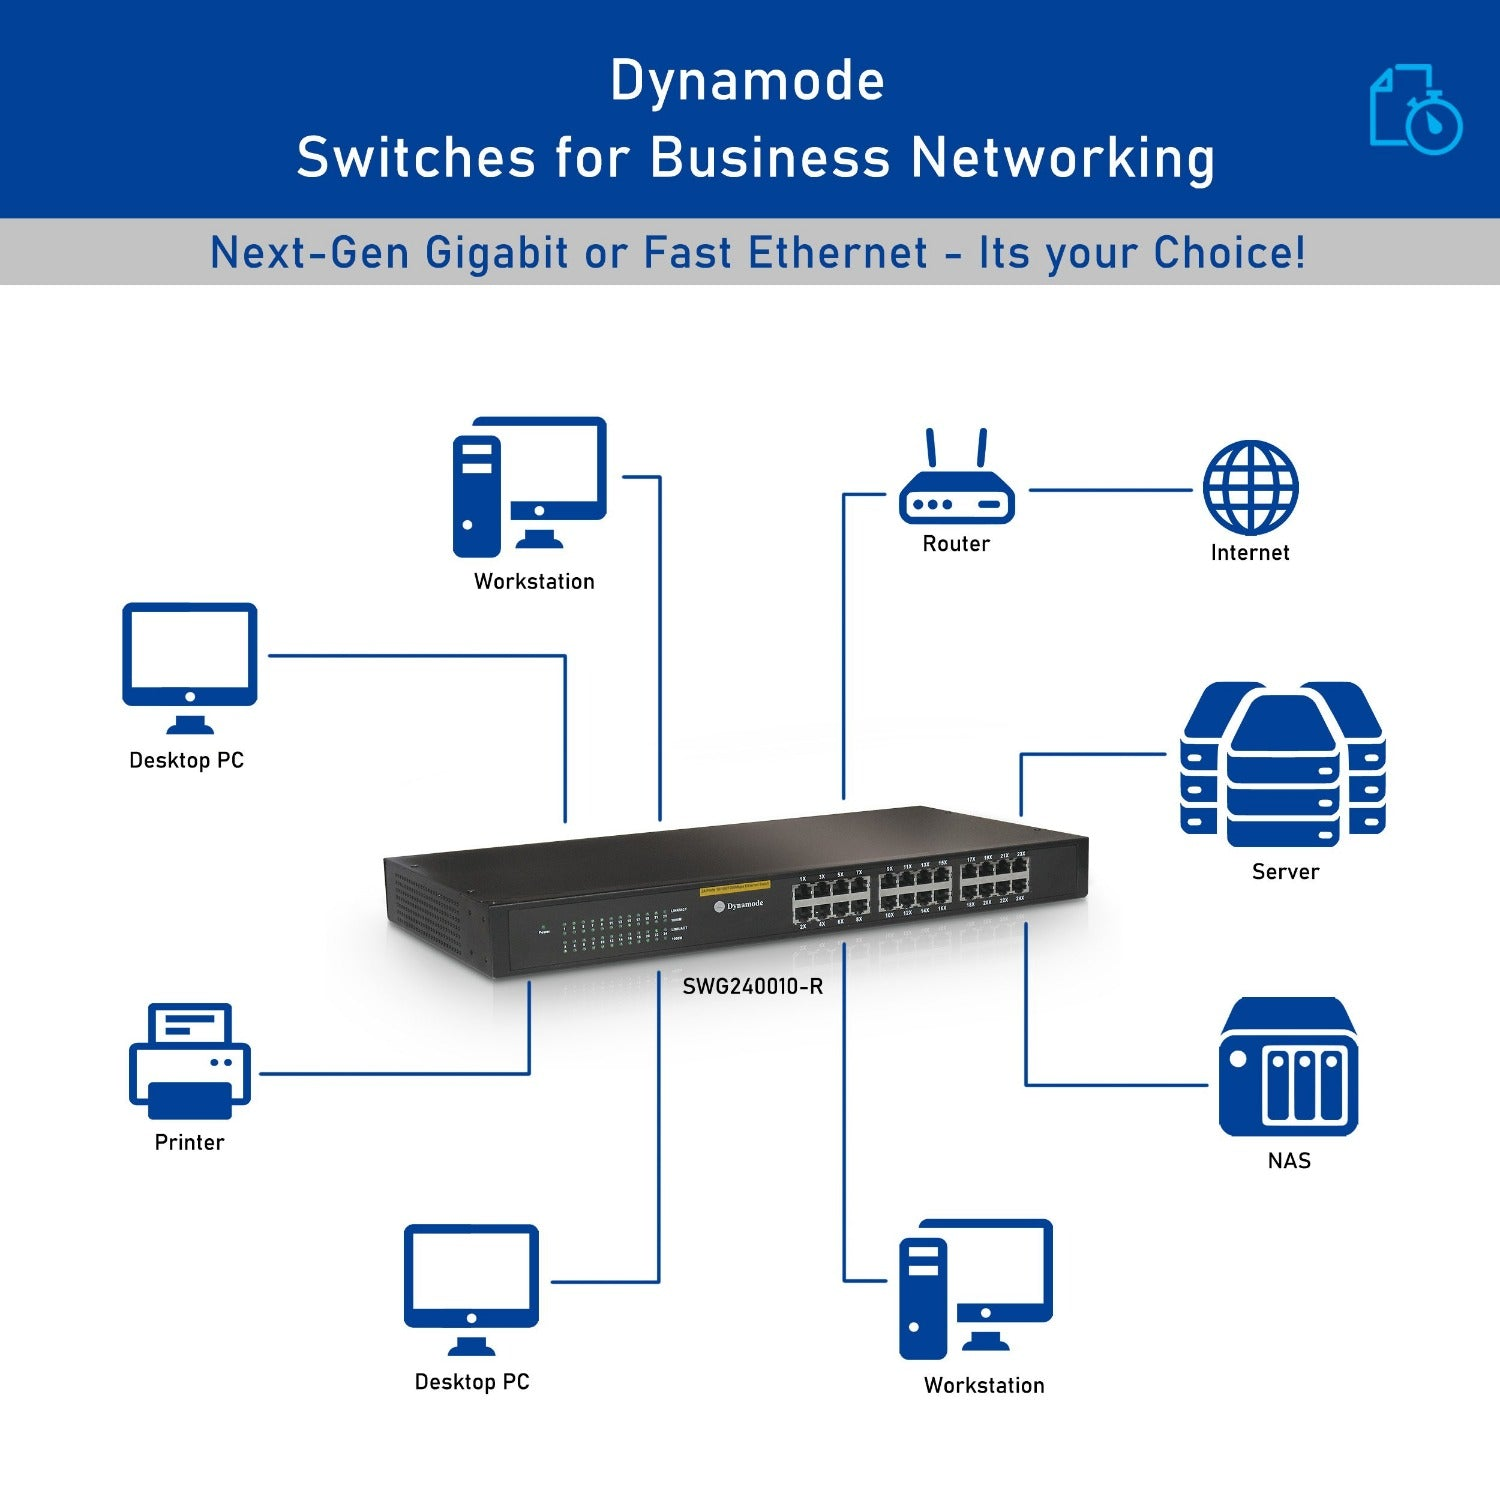 Dynamode SWG240010-R 24 Port Gigabit Rackmount Switch